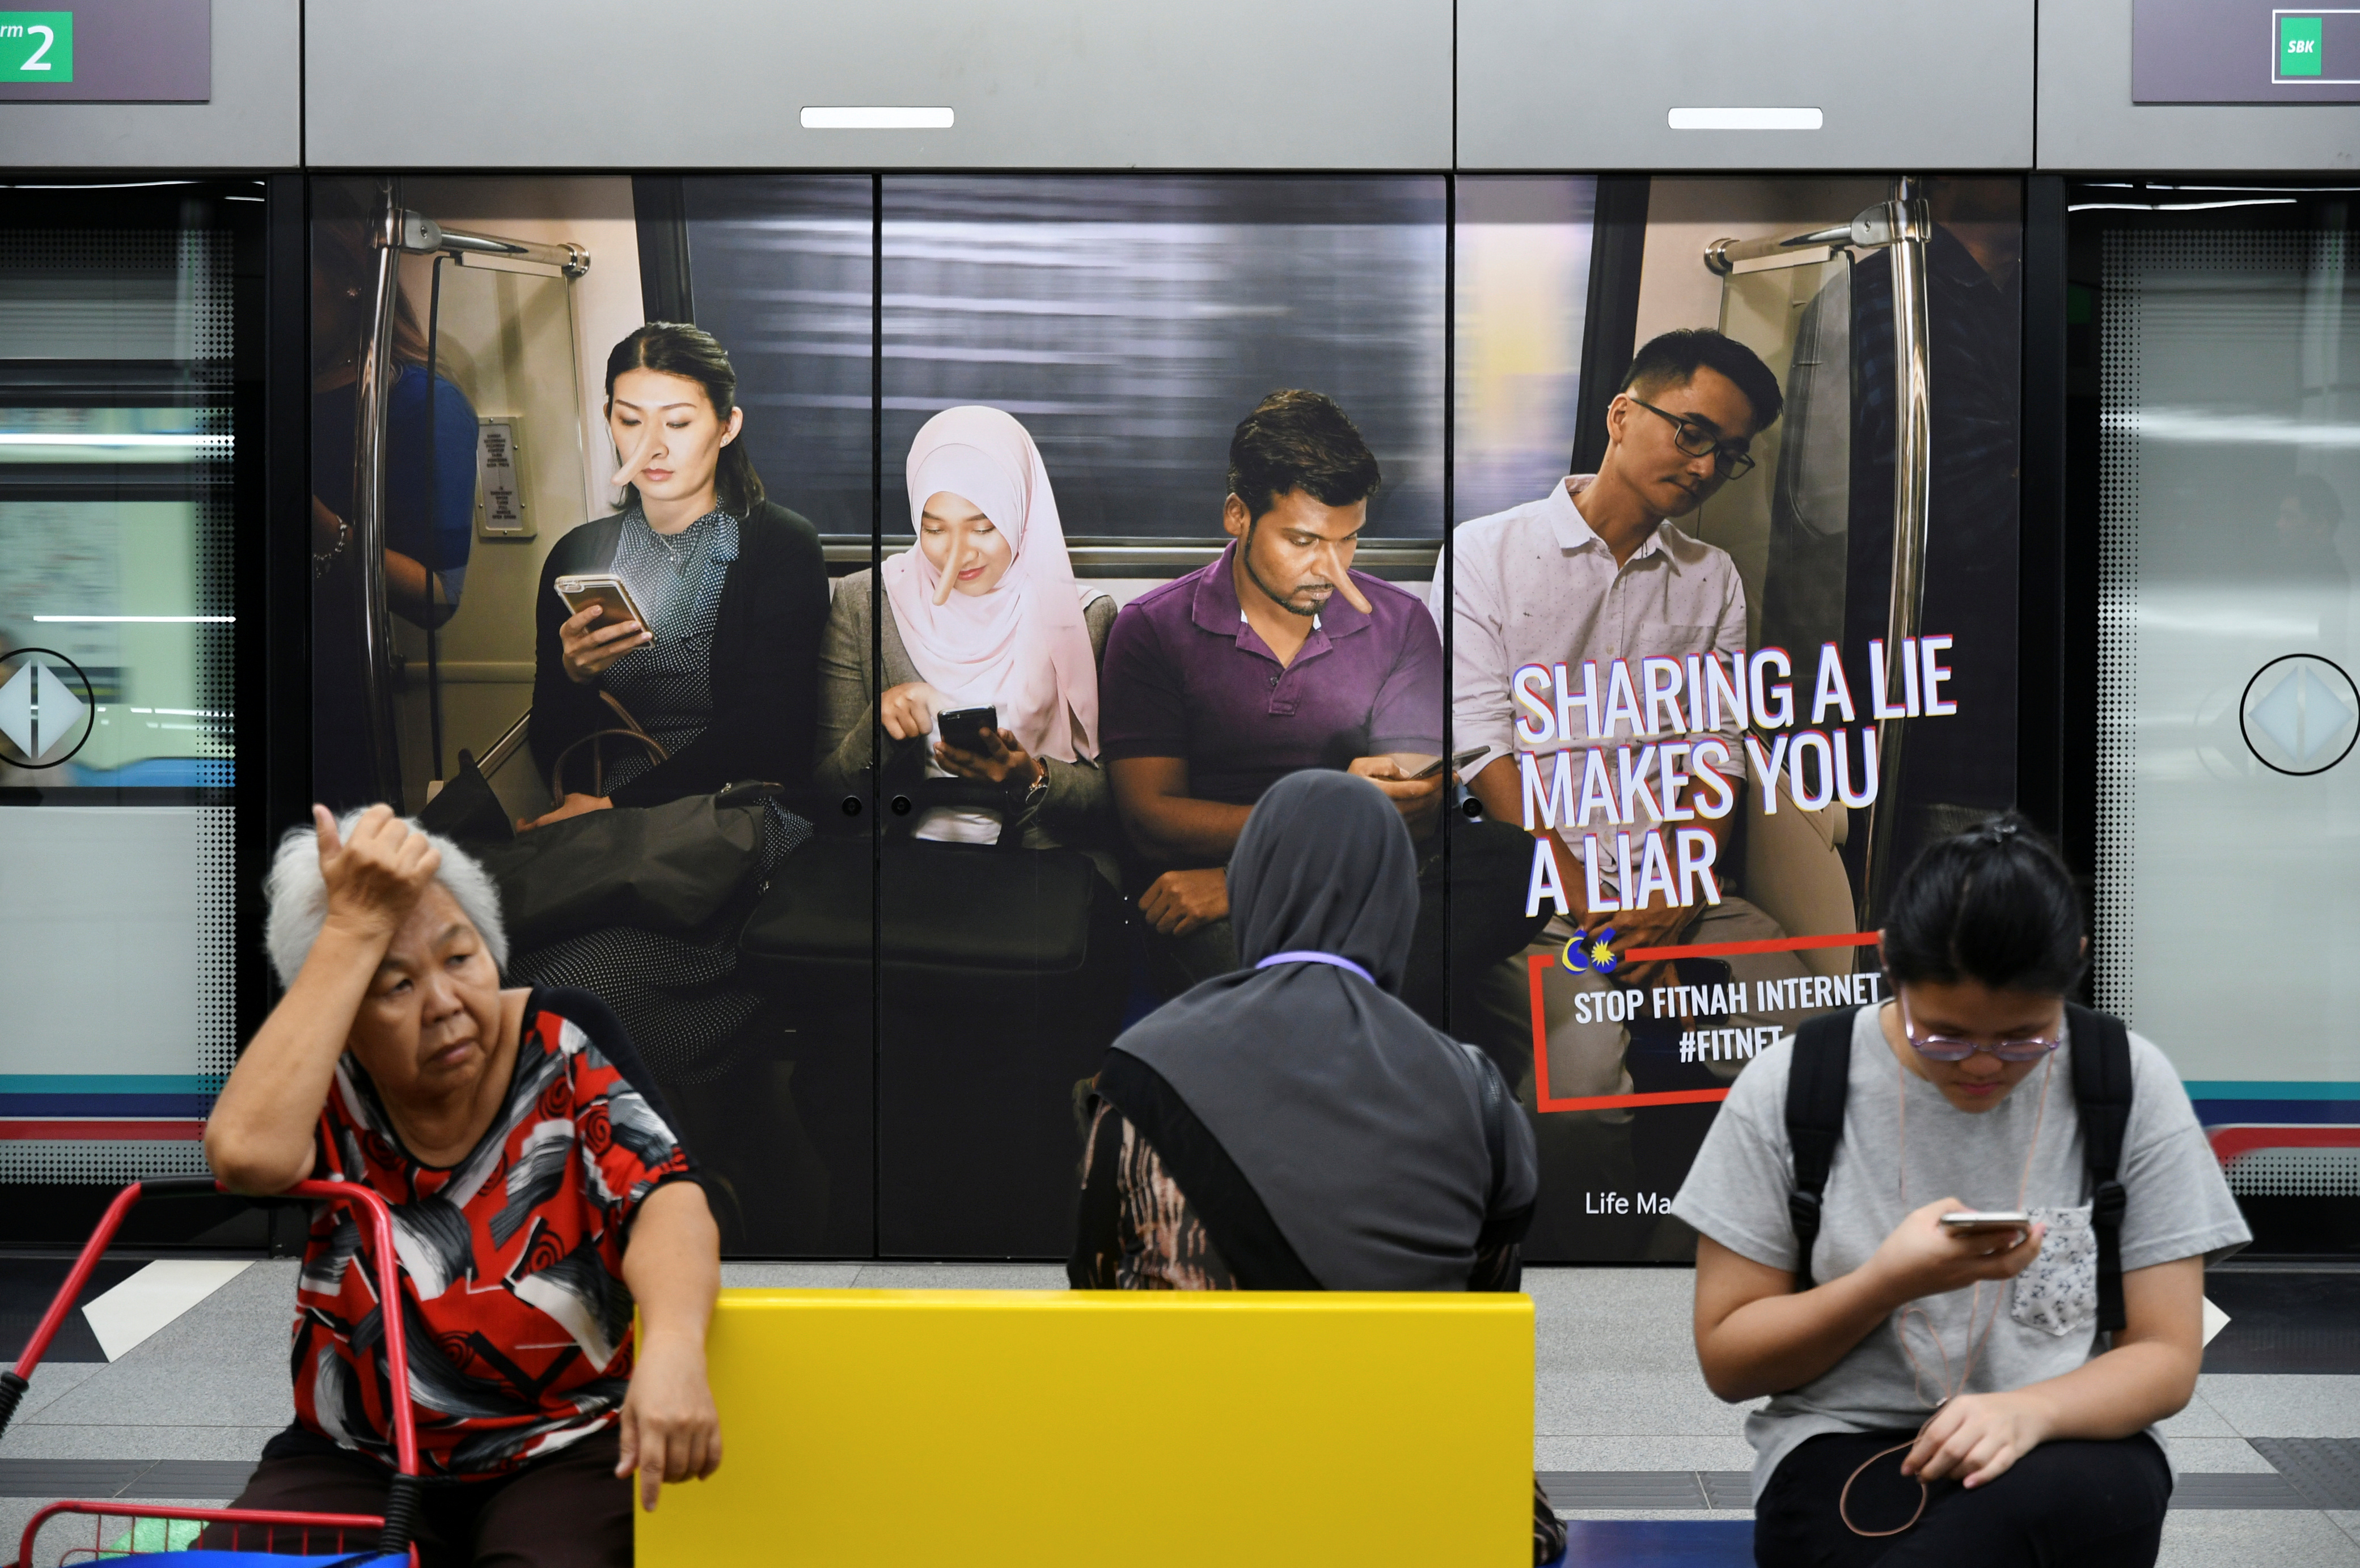 Commuters sit in front of an advertisement discouraging the dissemination of fake news, at a train station in Kuala Lumpur, Malaysia March 28, 2018. Picture taken March 28, 2018. REUTERS/Stringer